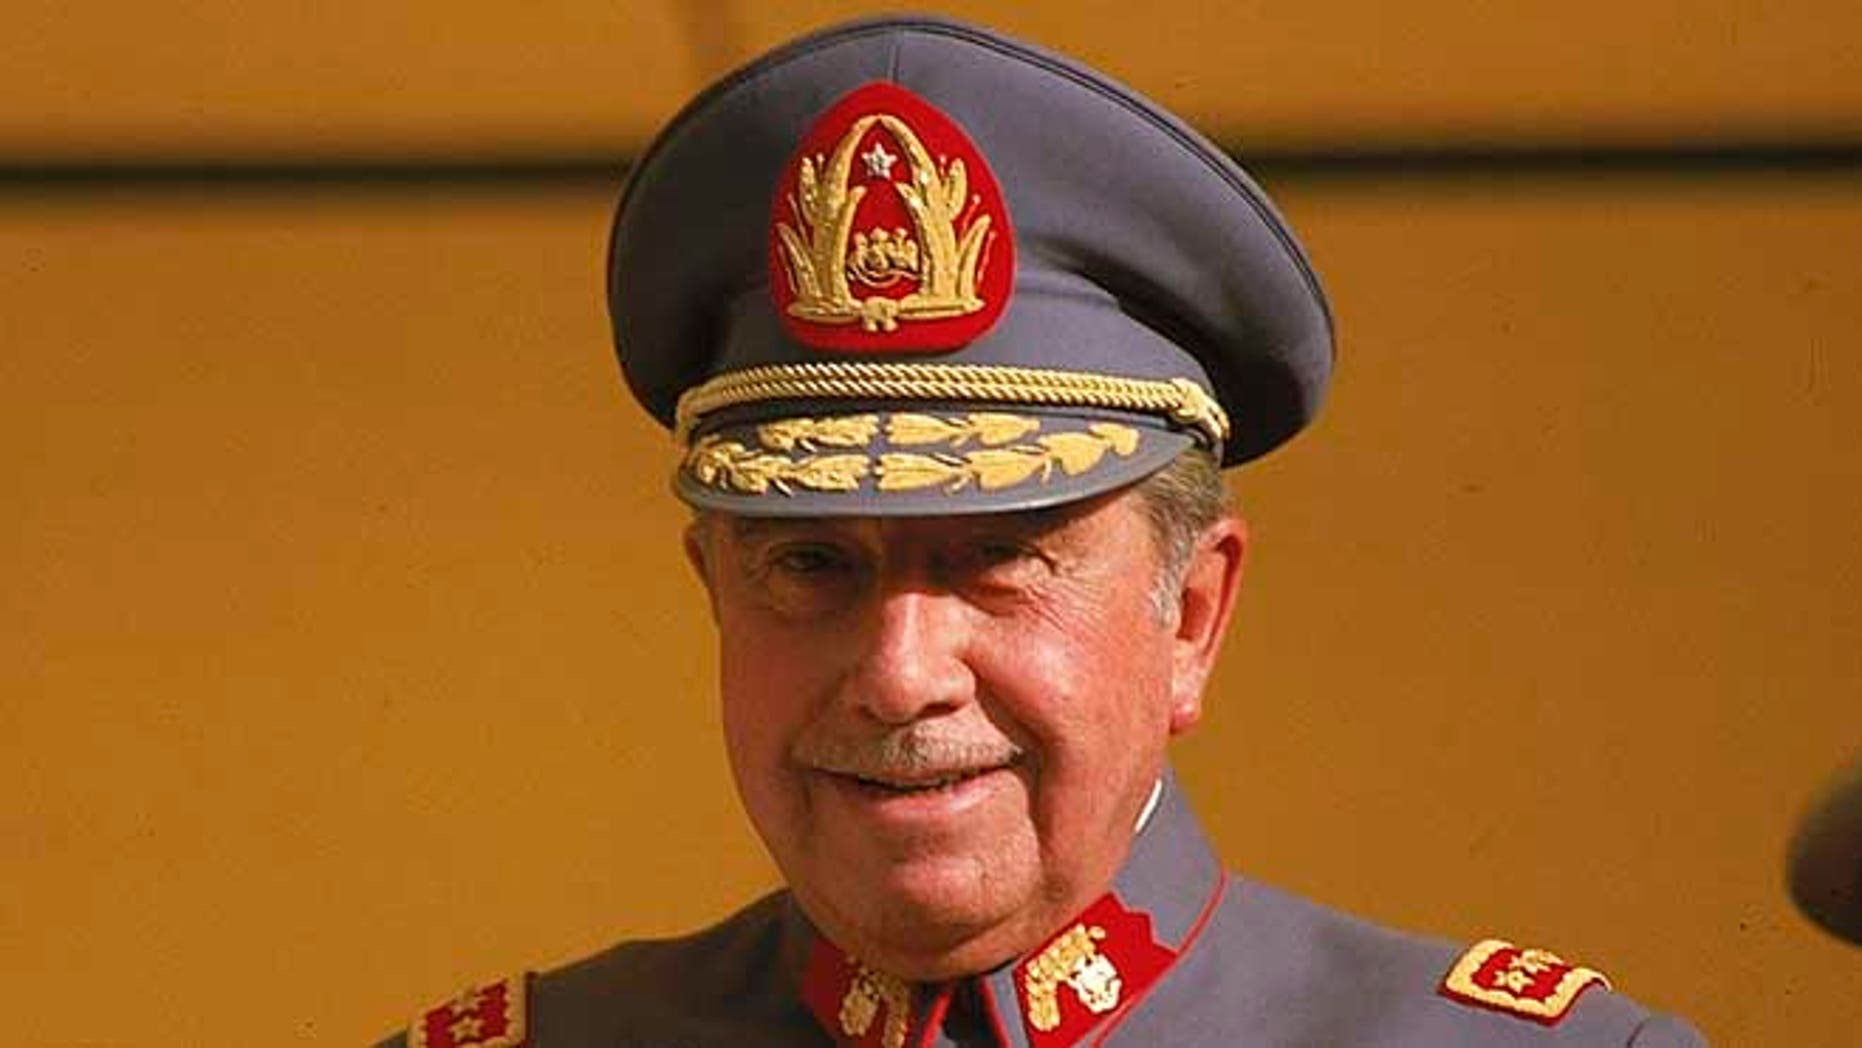 FILE - In this Oct. 1983, file photo, General Augusto Pinochet is seen in Santiago, Chile. Human rights groups and families of victims believe that military pacts of silence that hushed up many of the atrocities committed during the rule of Gen. Pinochet may finally be unraveling. (AP Photo/Eduardo Di Baia, File)